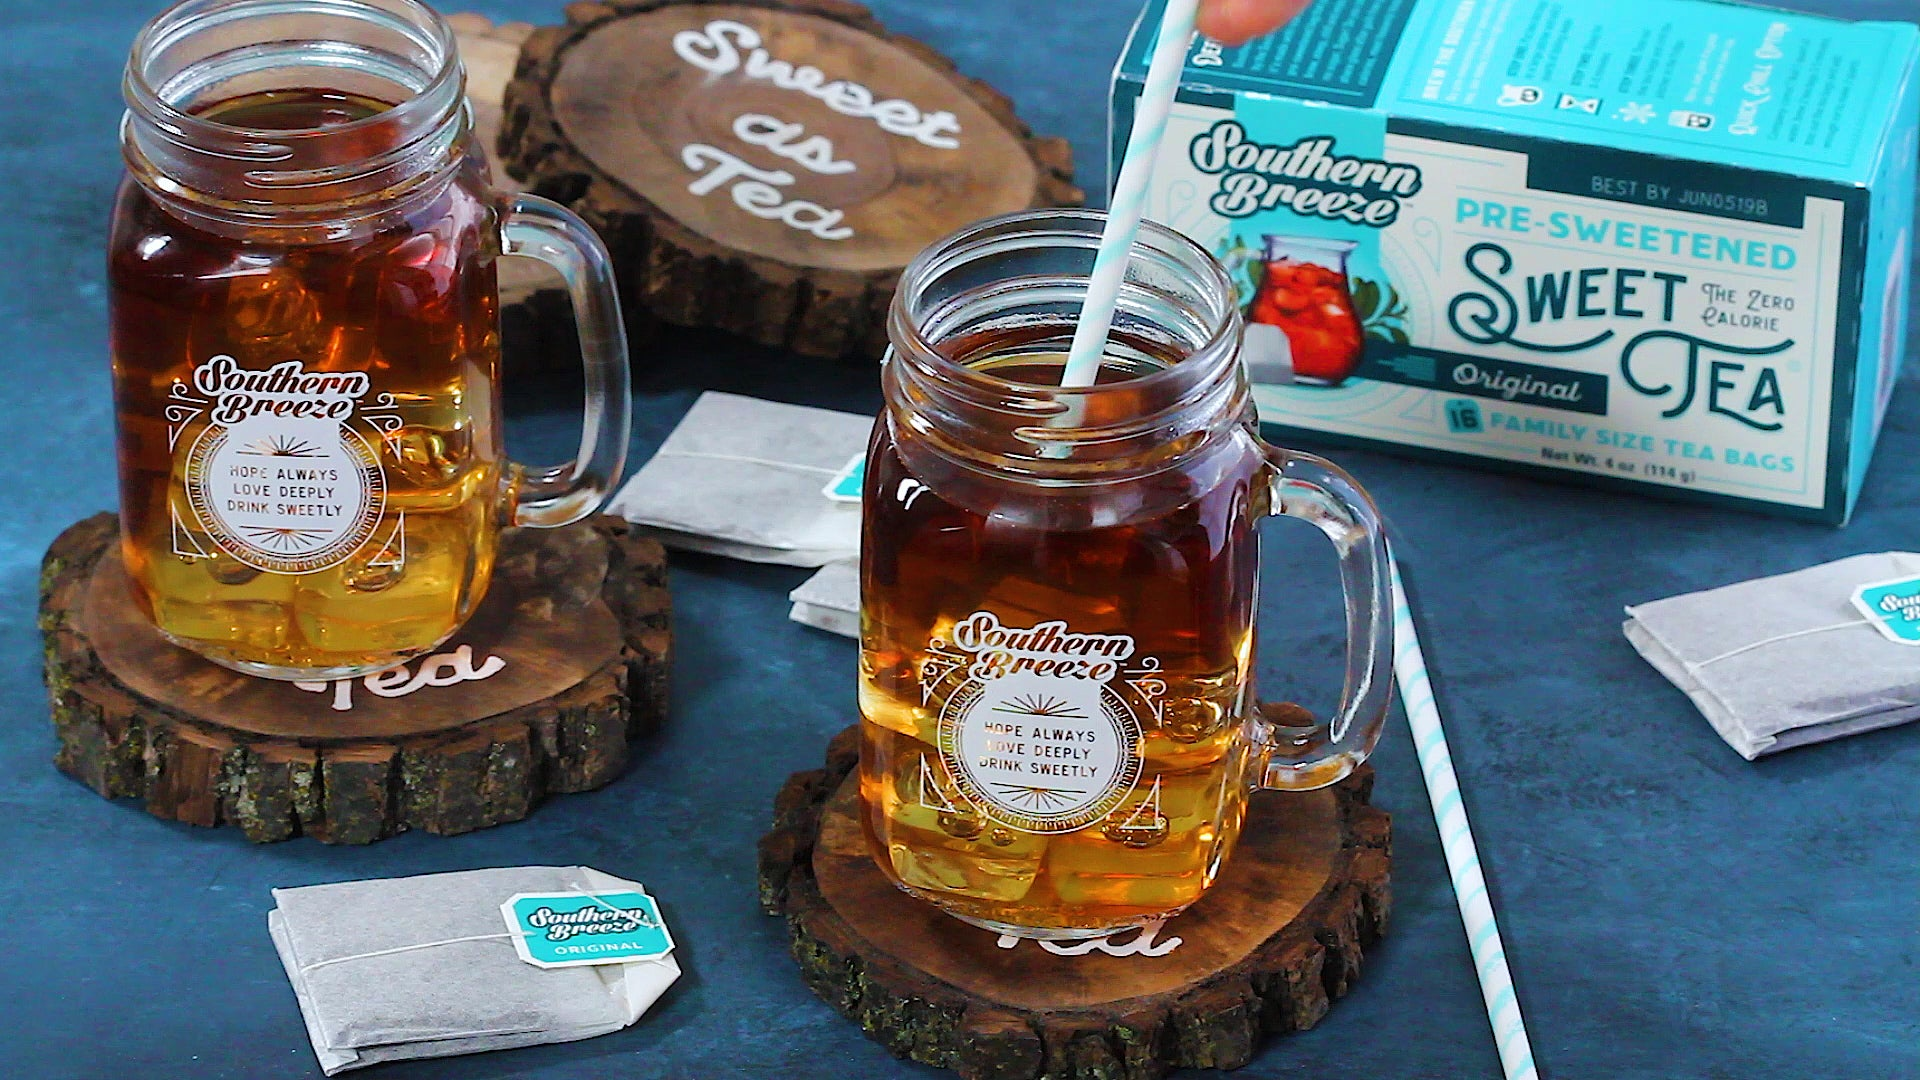 DIY Natural Wood Coasters for Southern Breeze Sweet Tea